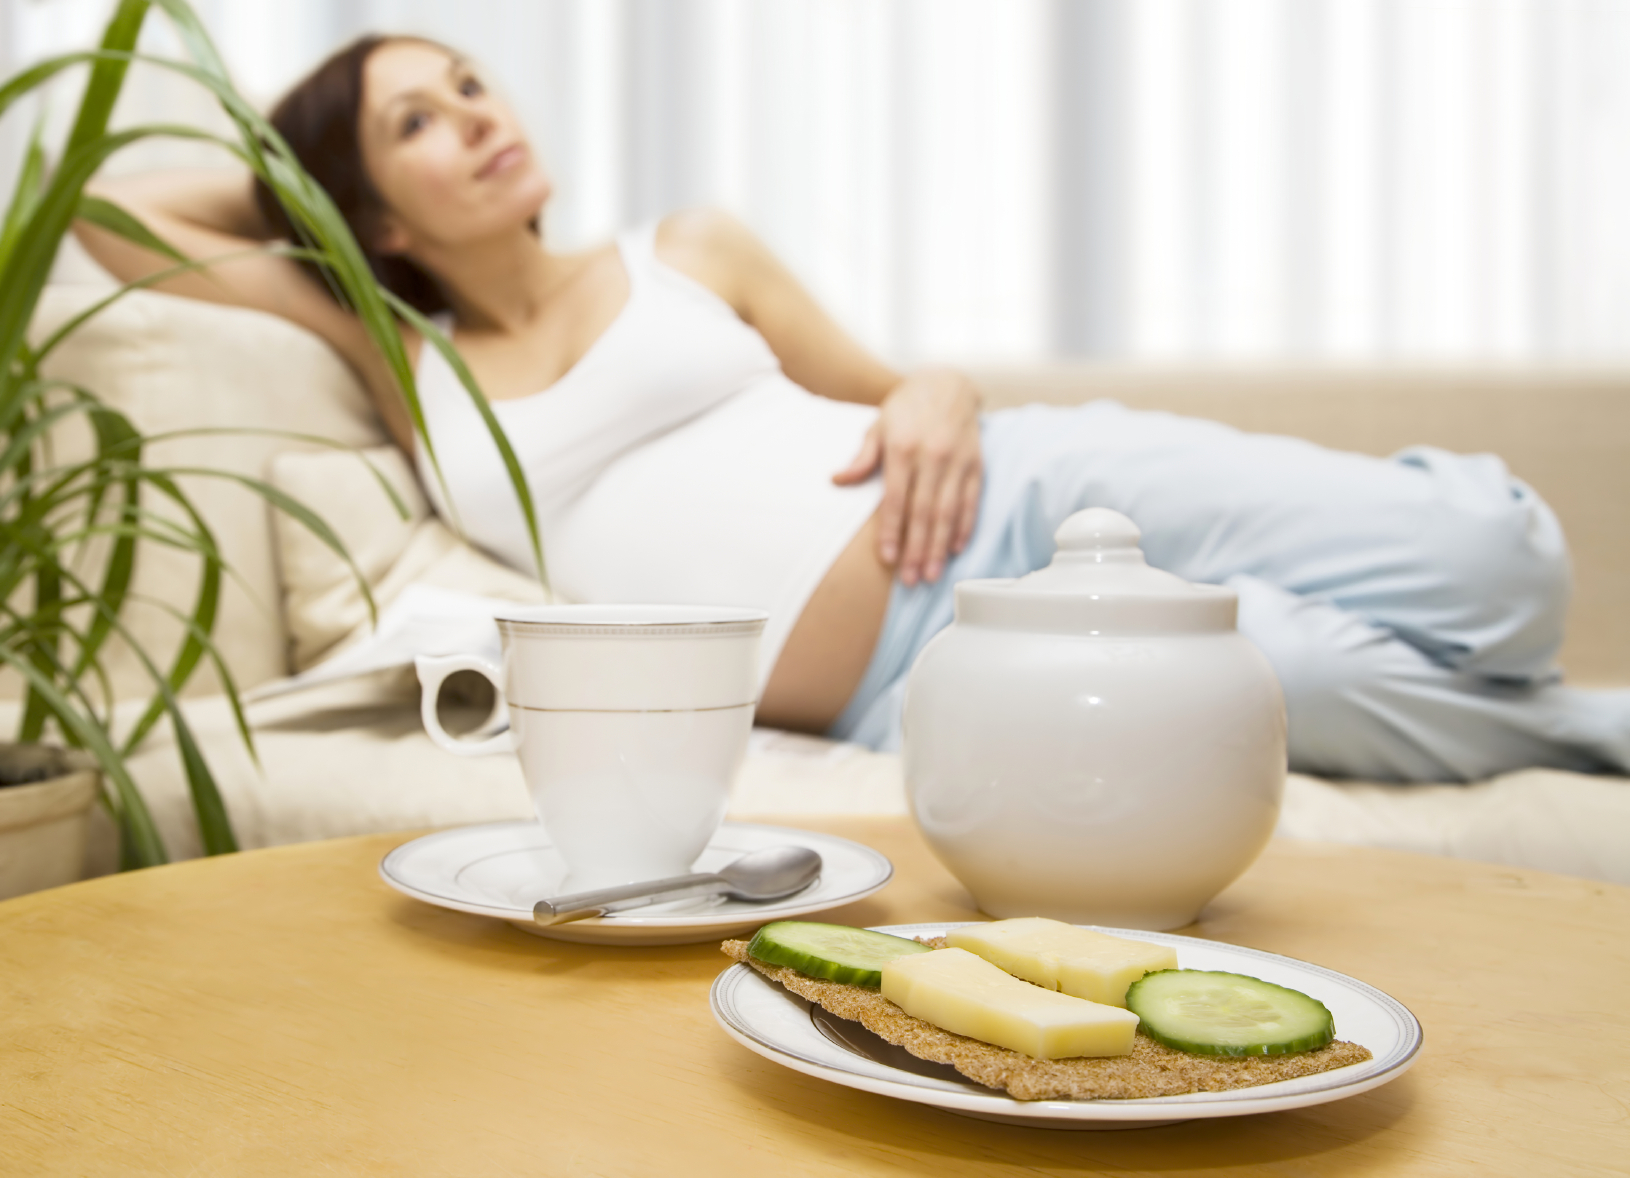 Variant Food not to eat while pregnant